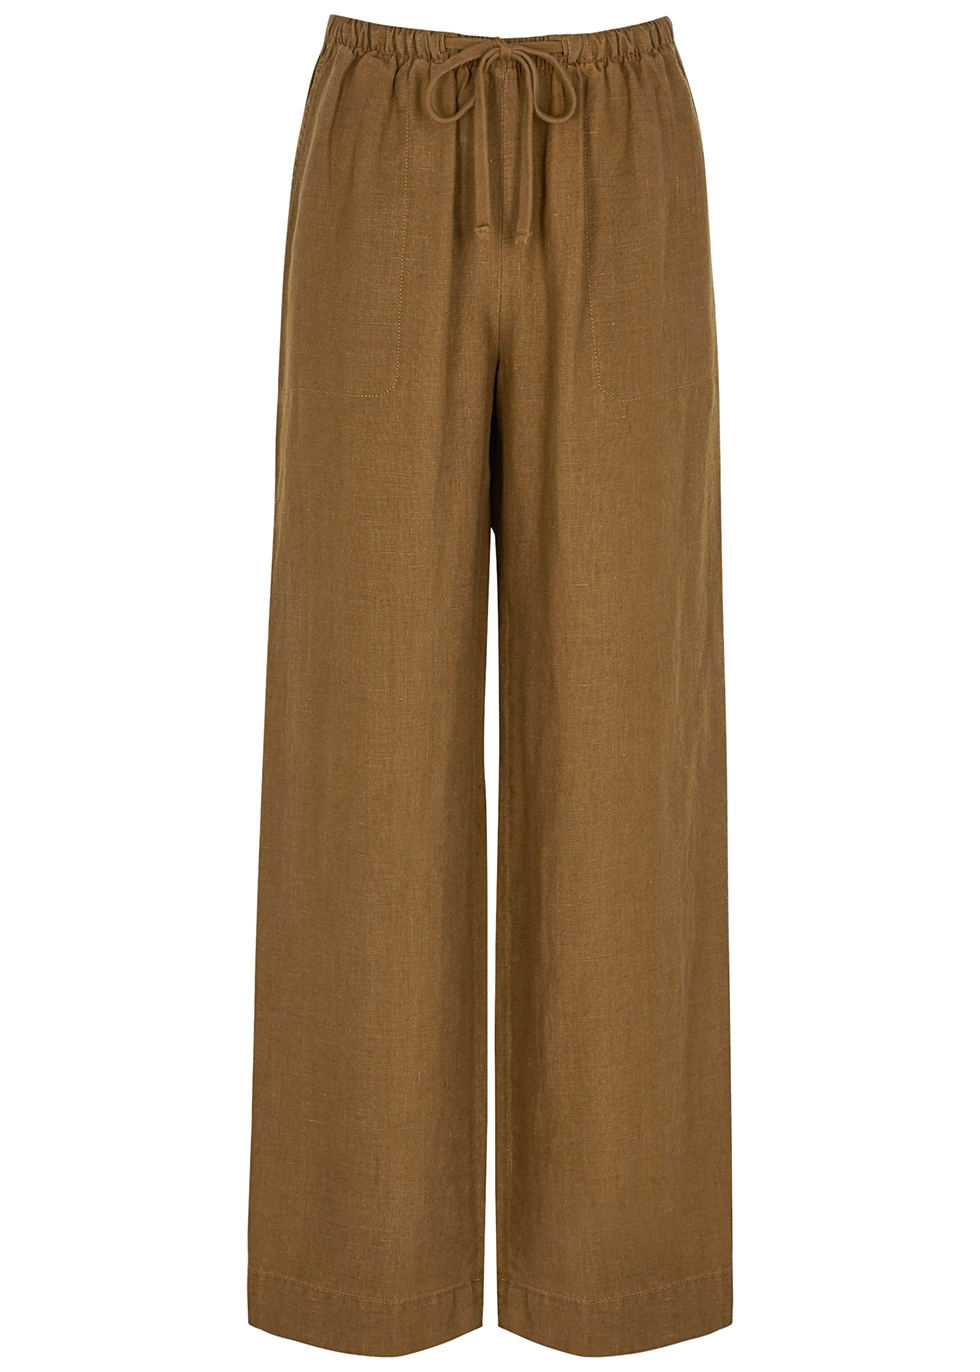 Brown wide-leg woven trousers